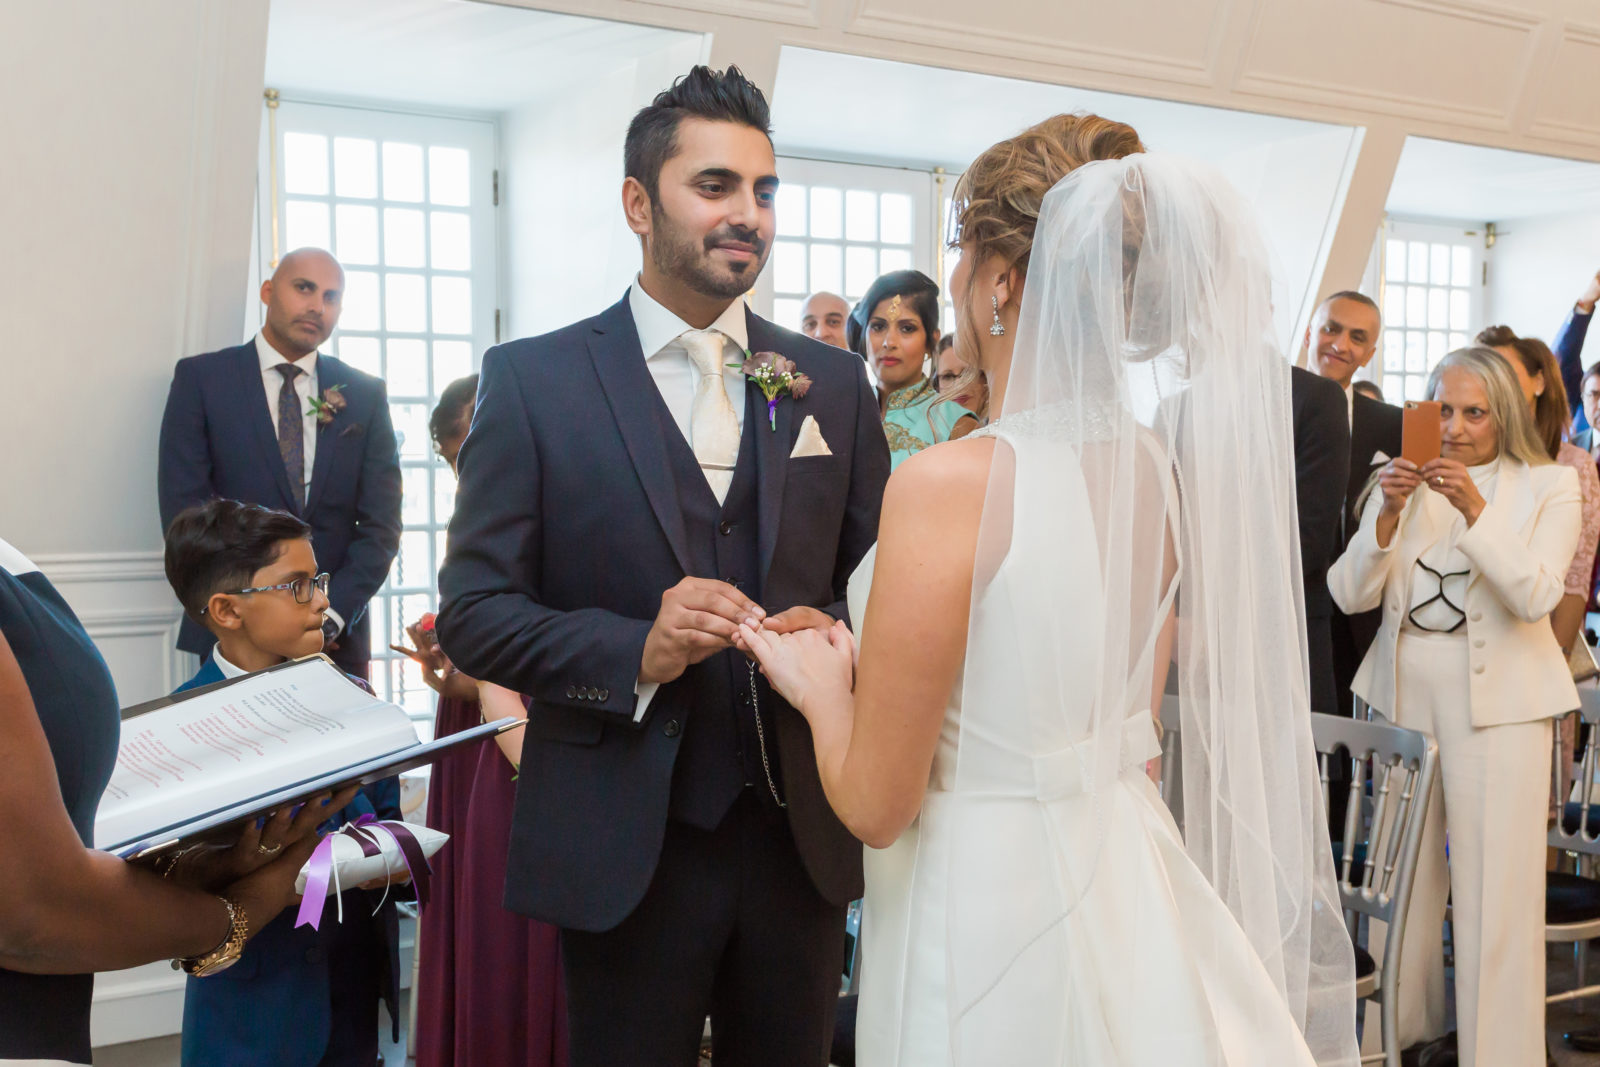 wedding-ceremony-in-London.jpg